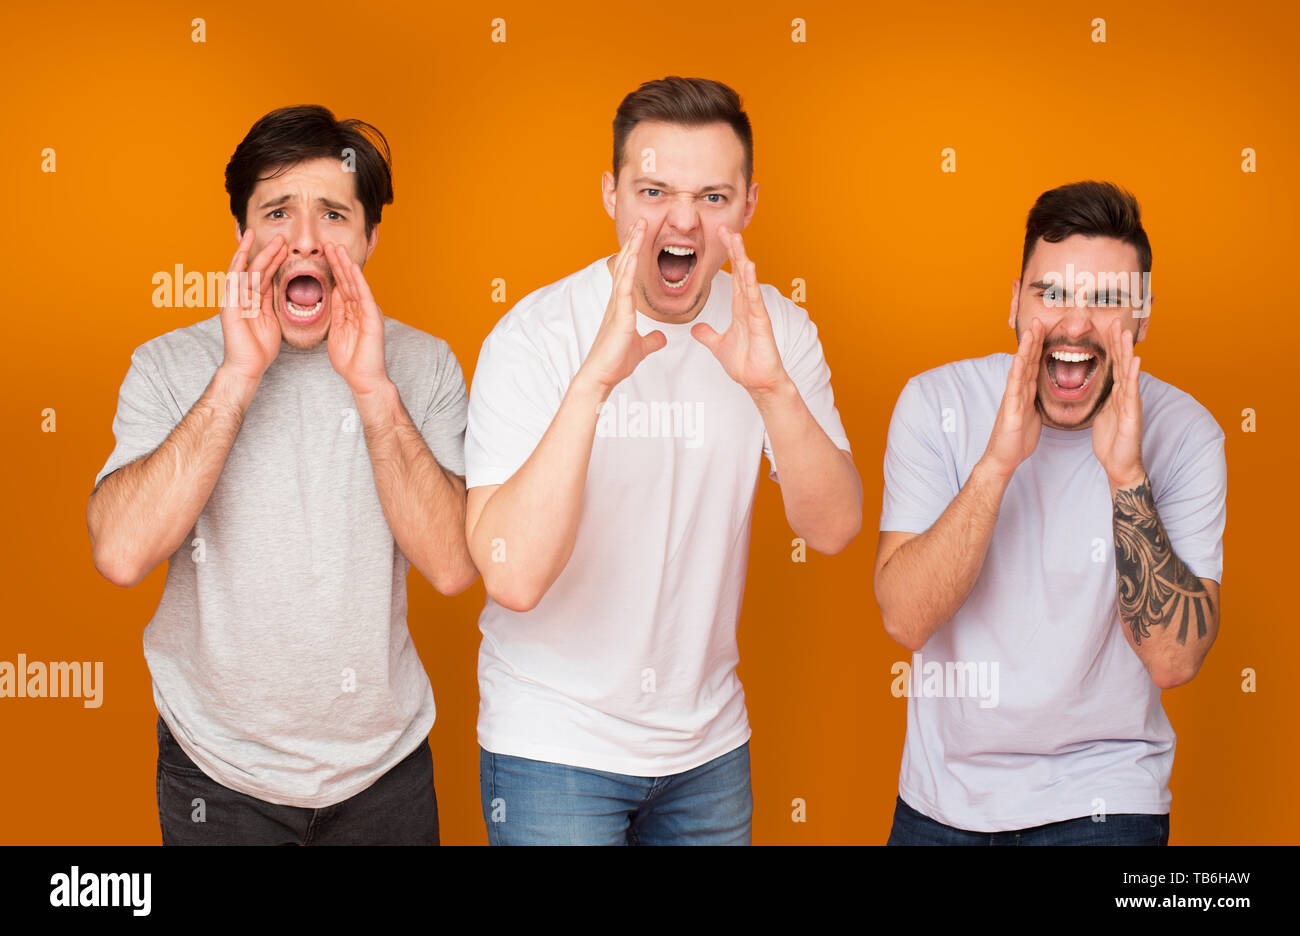 Men screaming loudly, holding hands near mouth over orange studio background - Stock Image